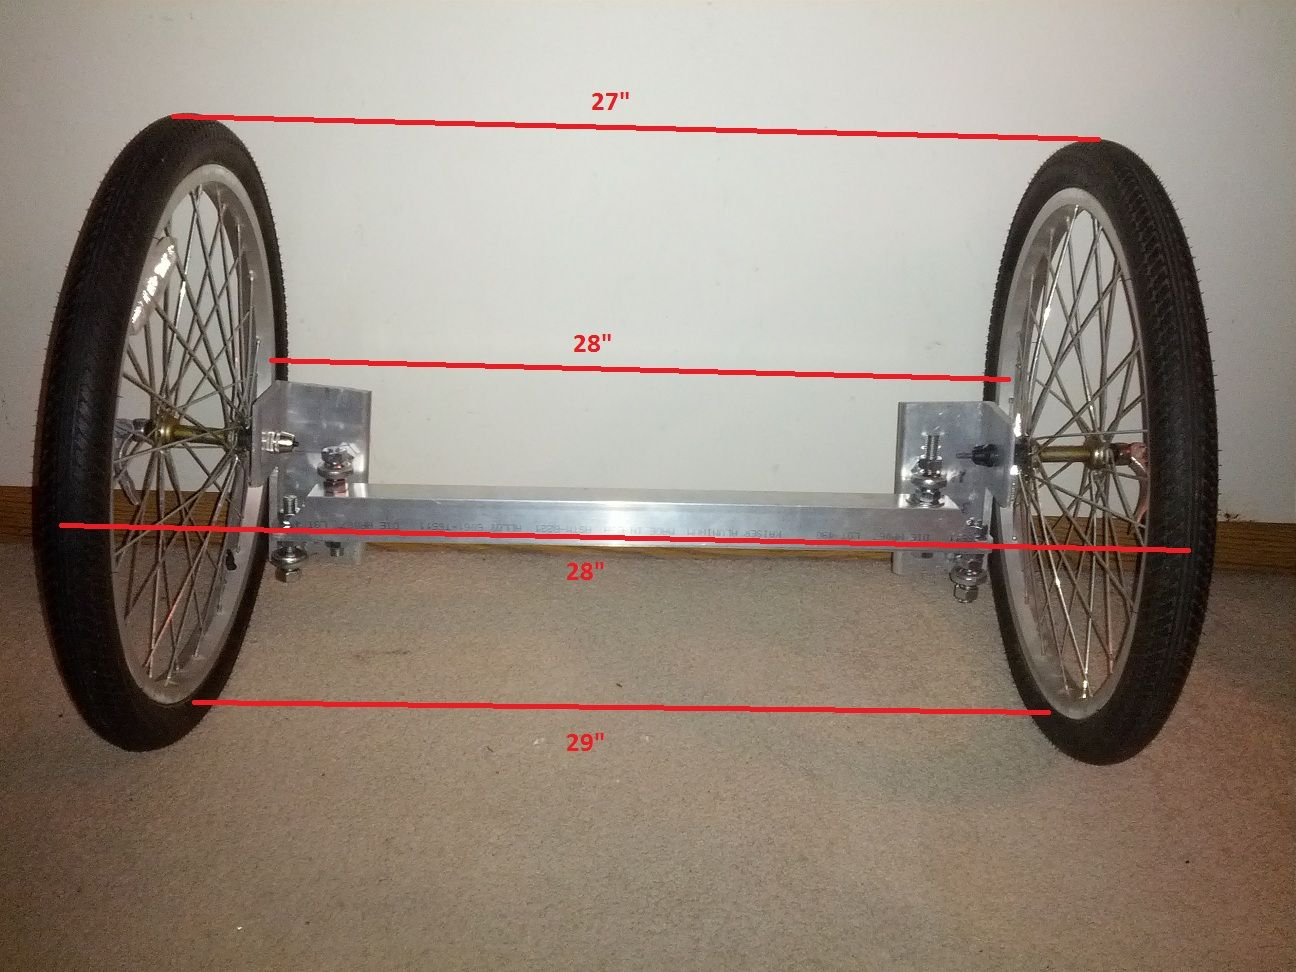 Crossbeam Tire Alignment Bike Pinterest Tired Jeep Cars And